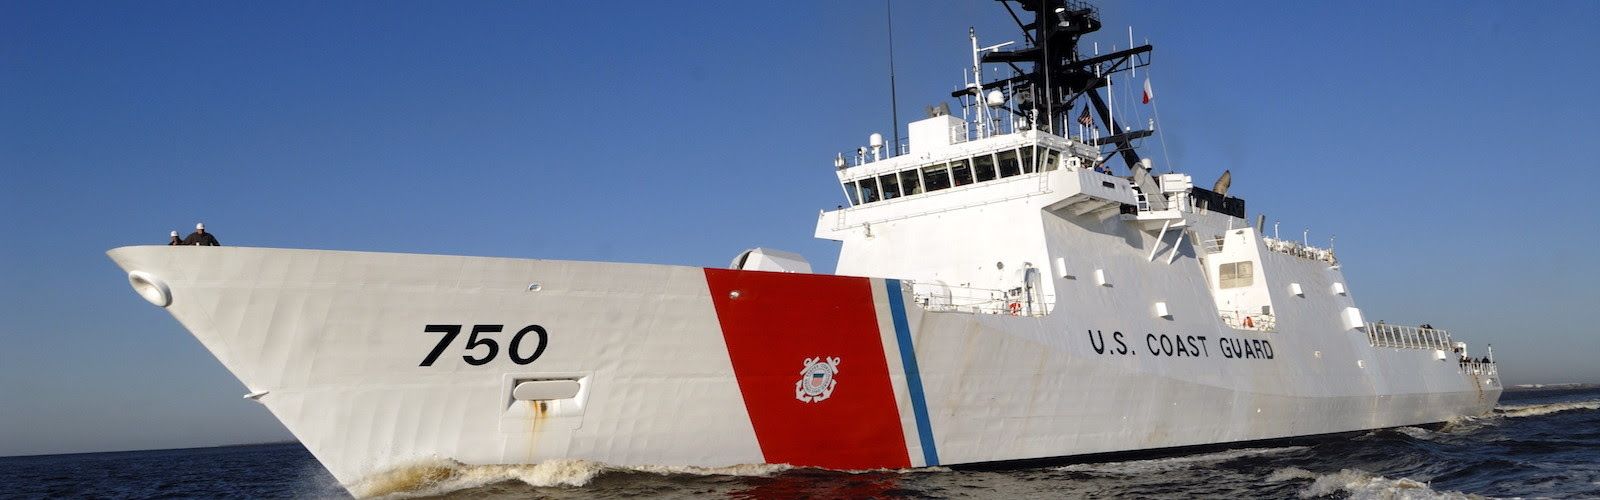 Uscg Wallpaper Posted By Samantha Thompson